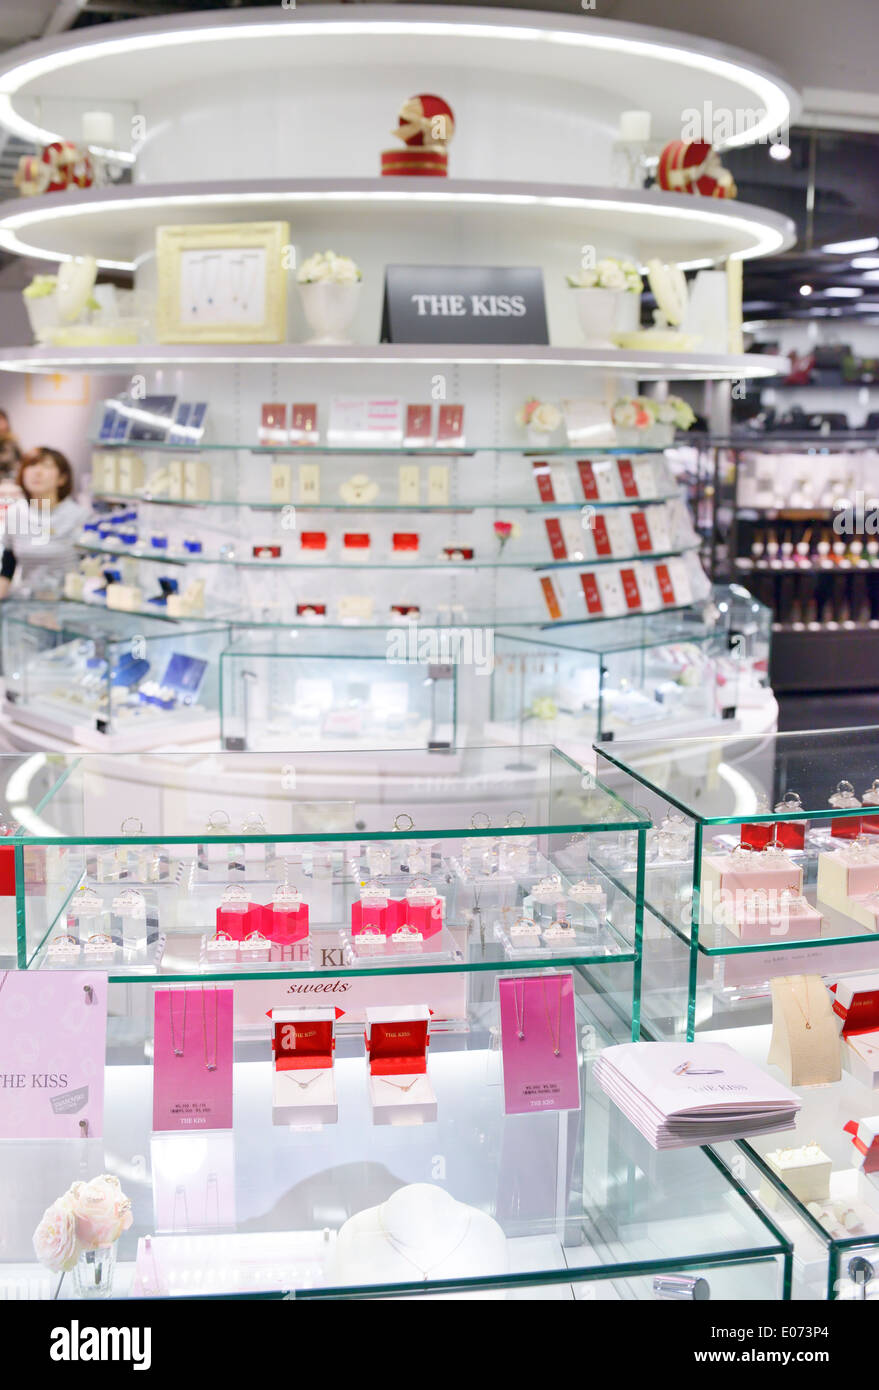 The Kiss Jewelry display in the Loft store in Tokyo, Japan - Stock Image